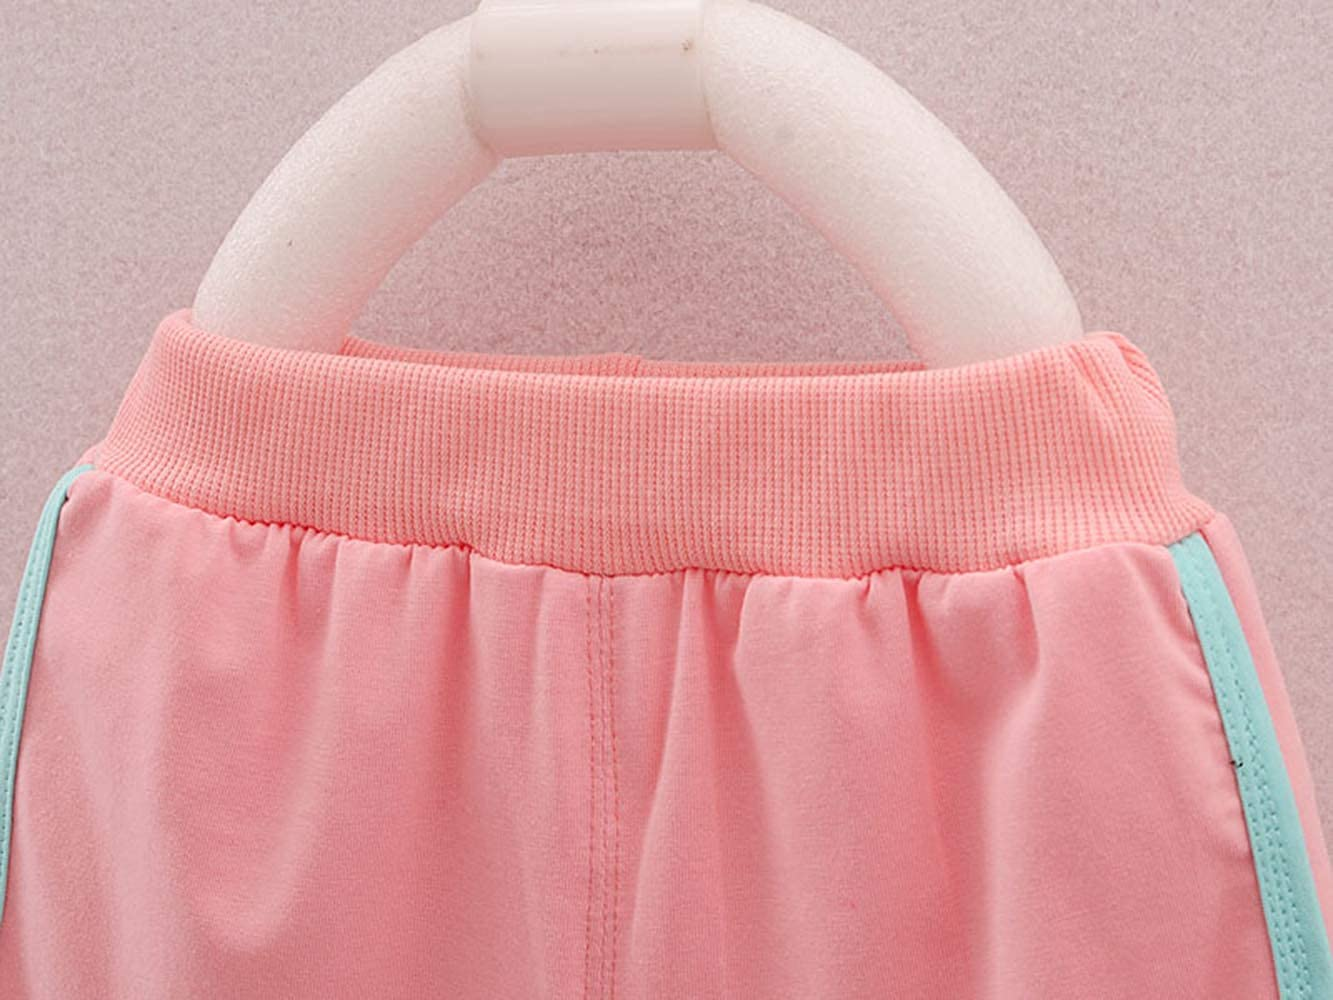 Short Pants MH-Lucky Baby Girl Clothes Outfits Short Sets 2 Pieces with T-Shirt